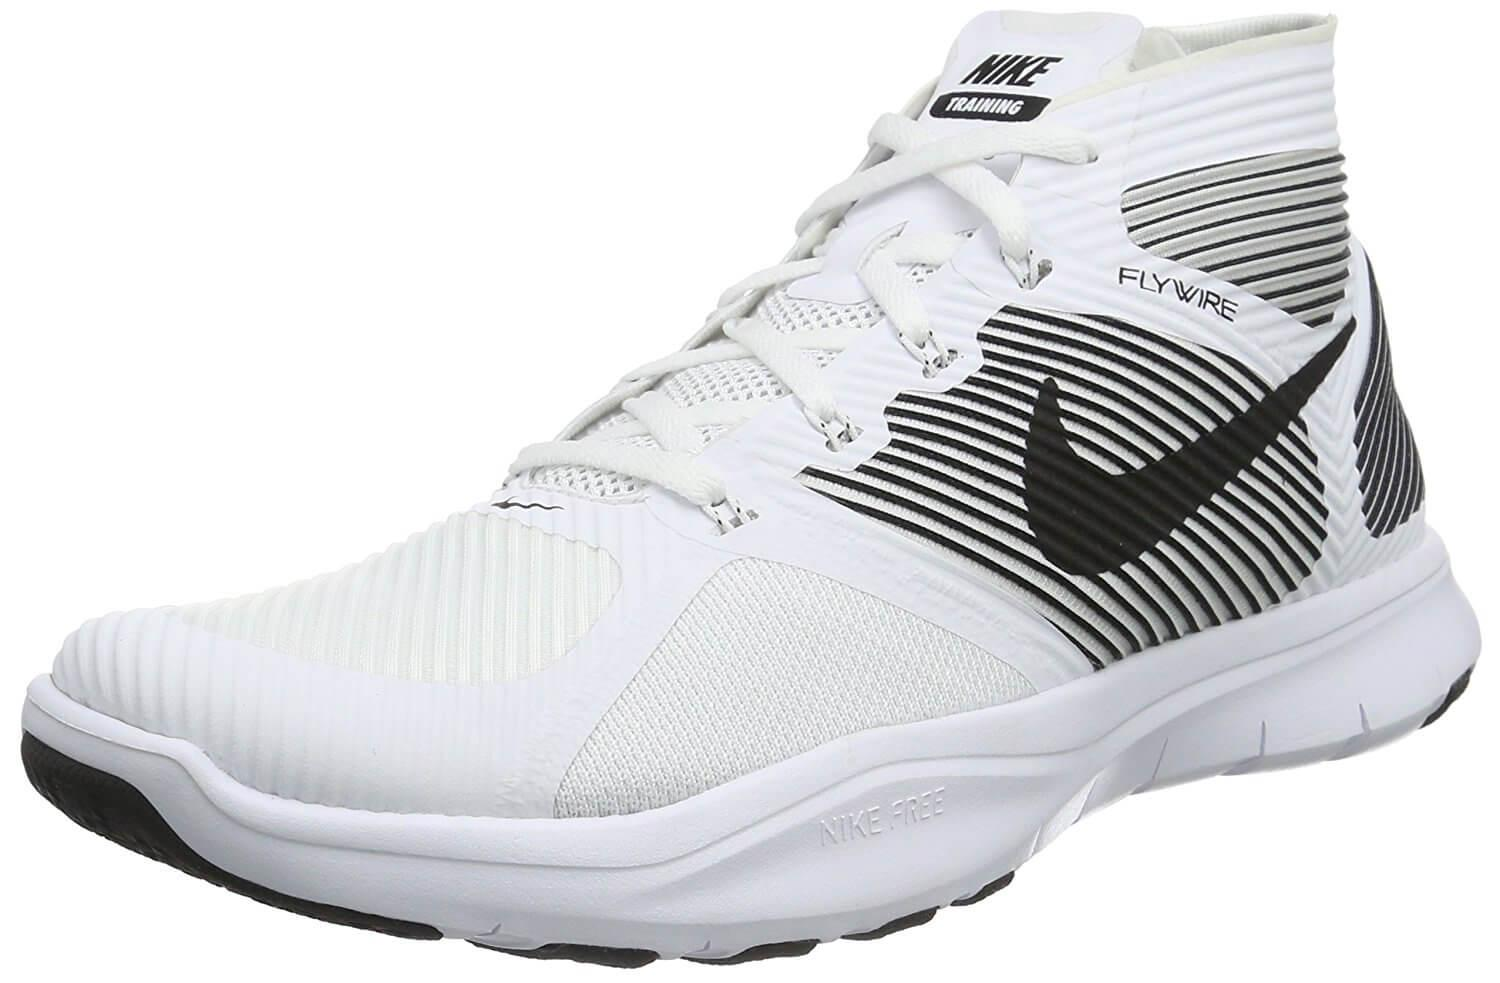 quality design f693c 6f382 Nike Free Train Instinct - To Buy or Not in Mar 2019